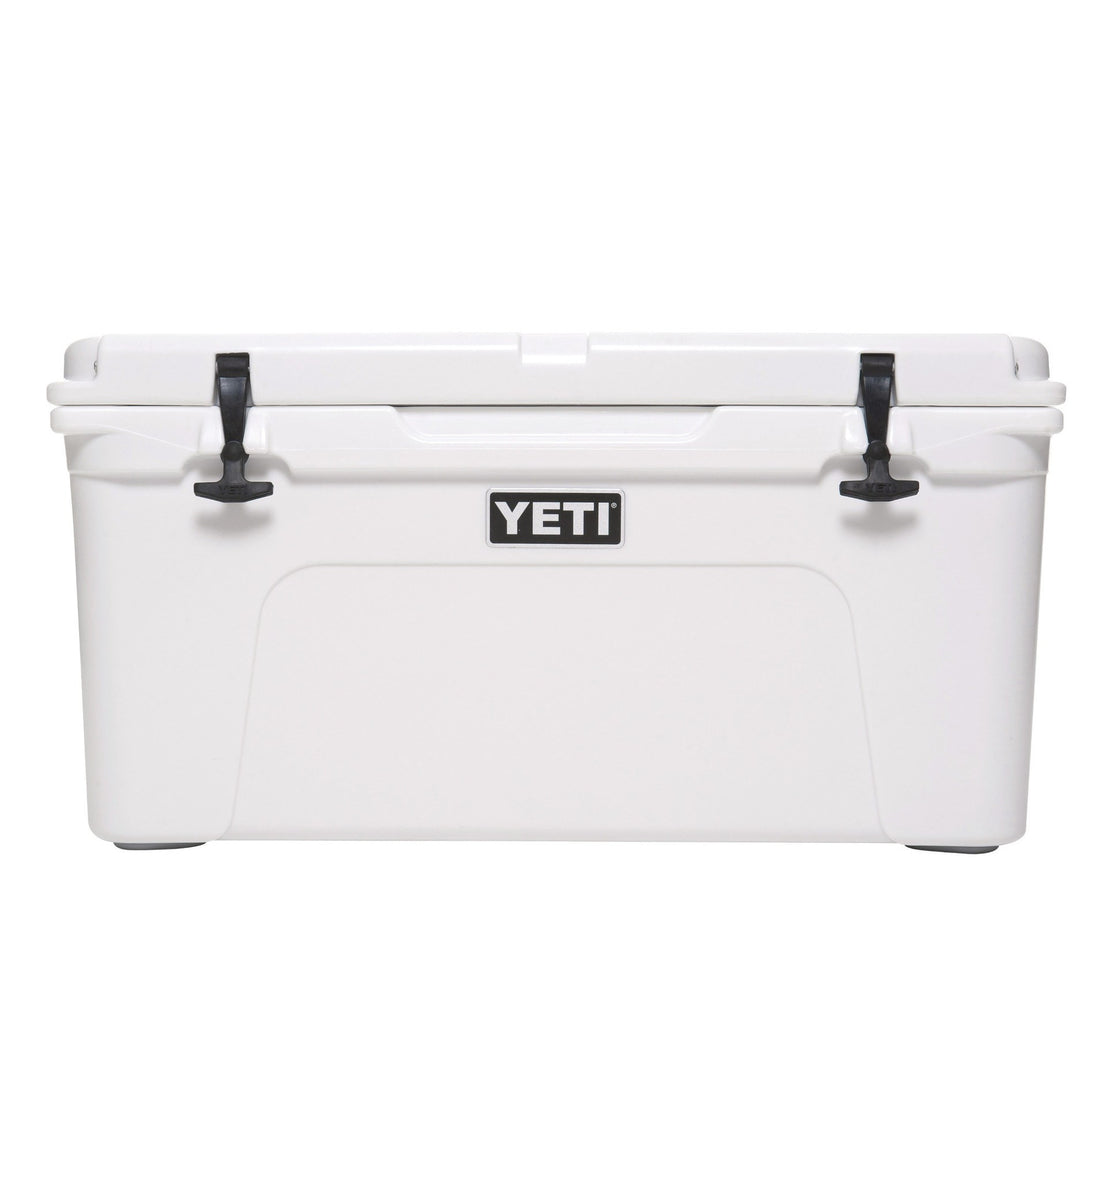 Yeti Tundra 65 - Camping: Coolers - Iron and Resin